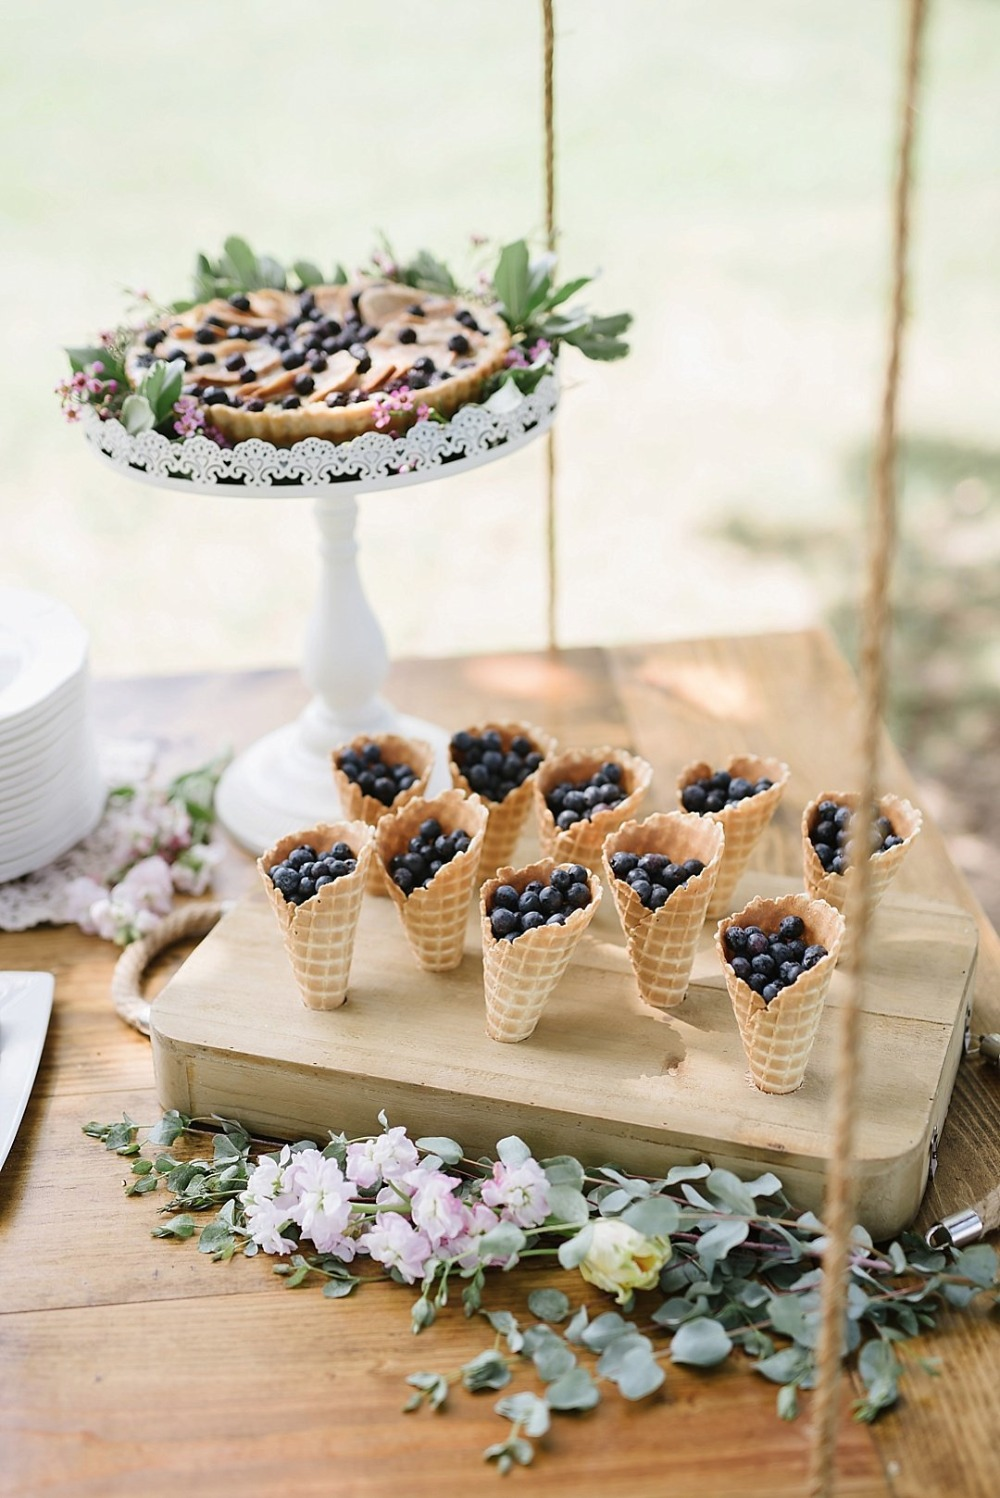 Blueberry filled ice cream cones